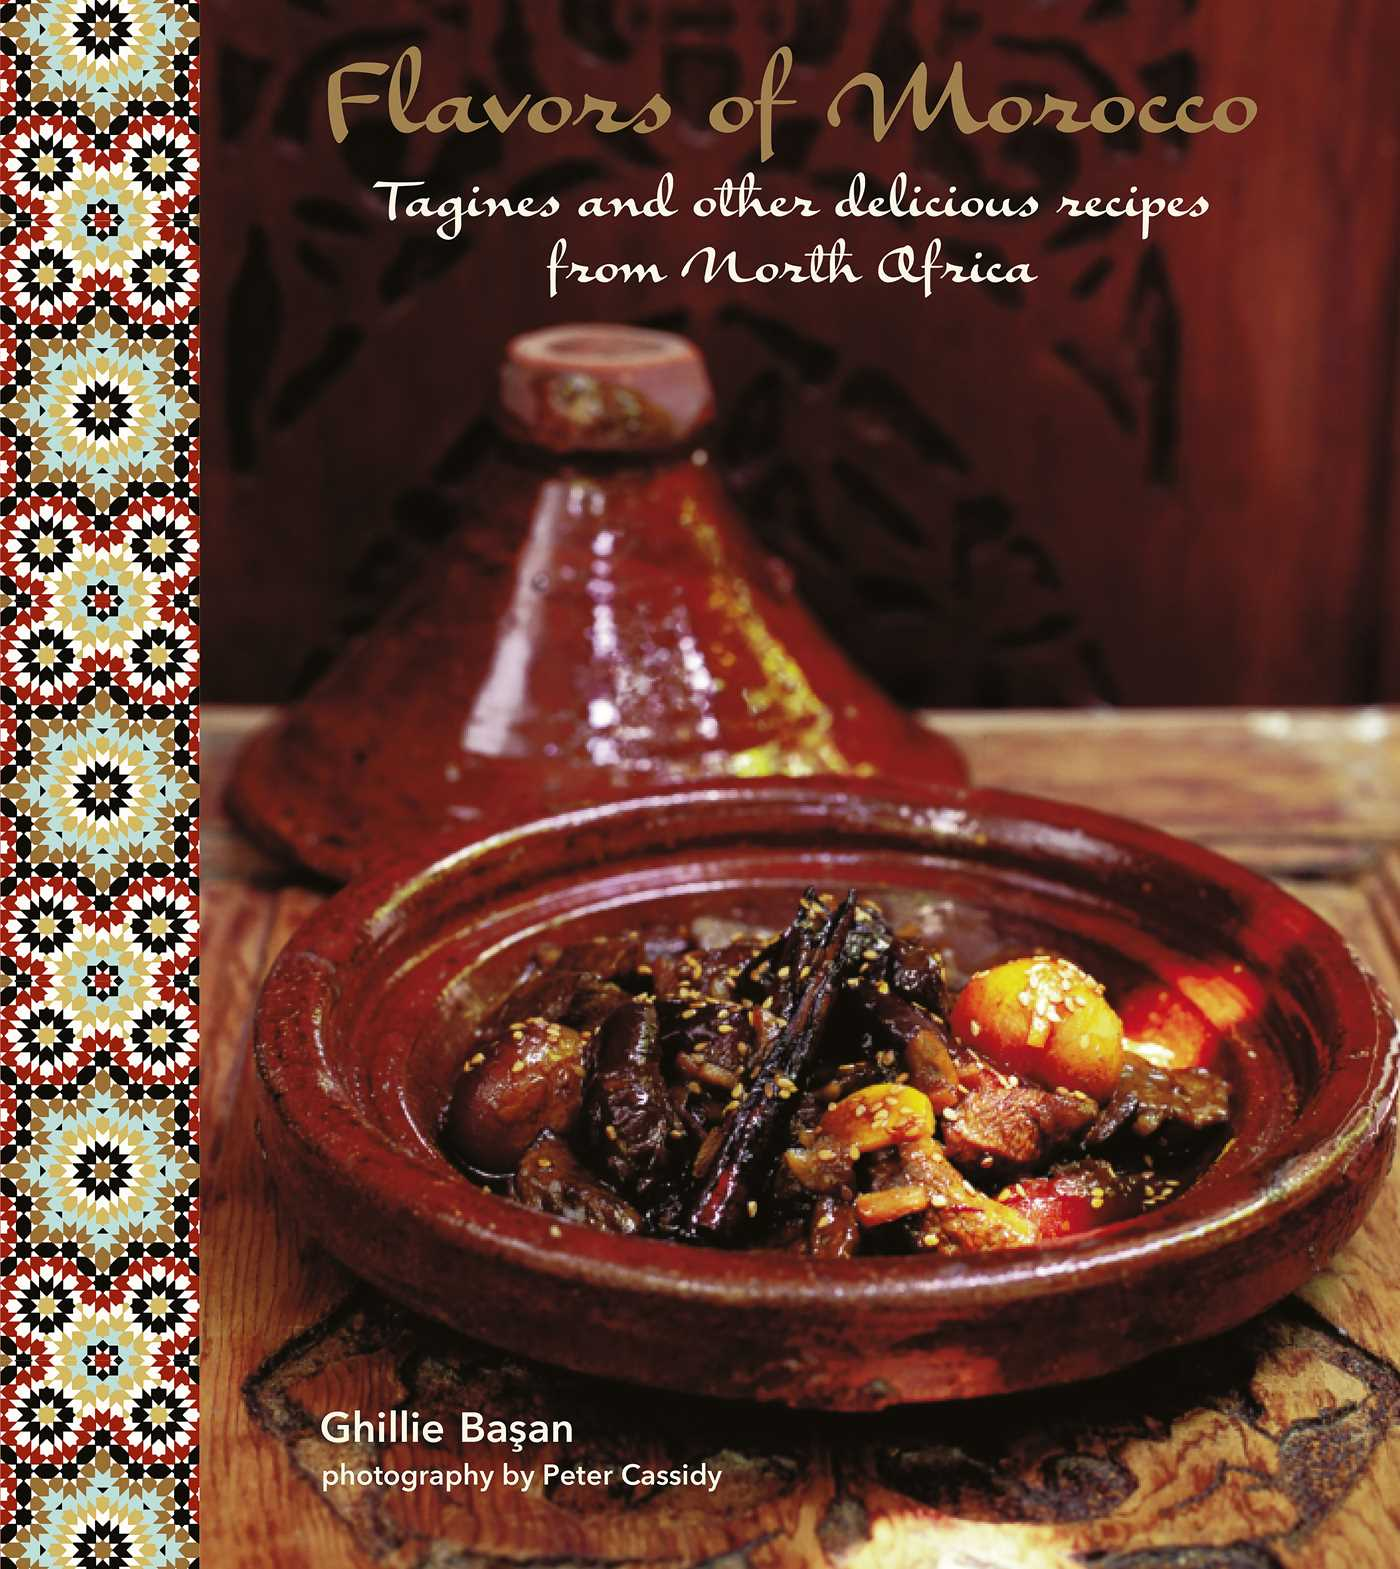 Flavors of morocco book by ghillie basan official publisher page flavors of morocco 9781849757843 hr forumfinder Choice Image